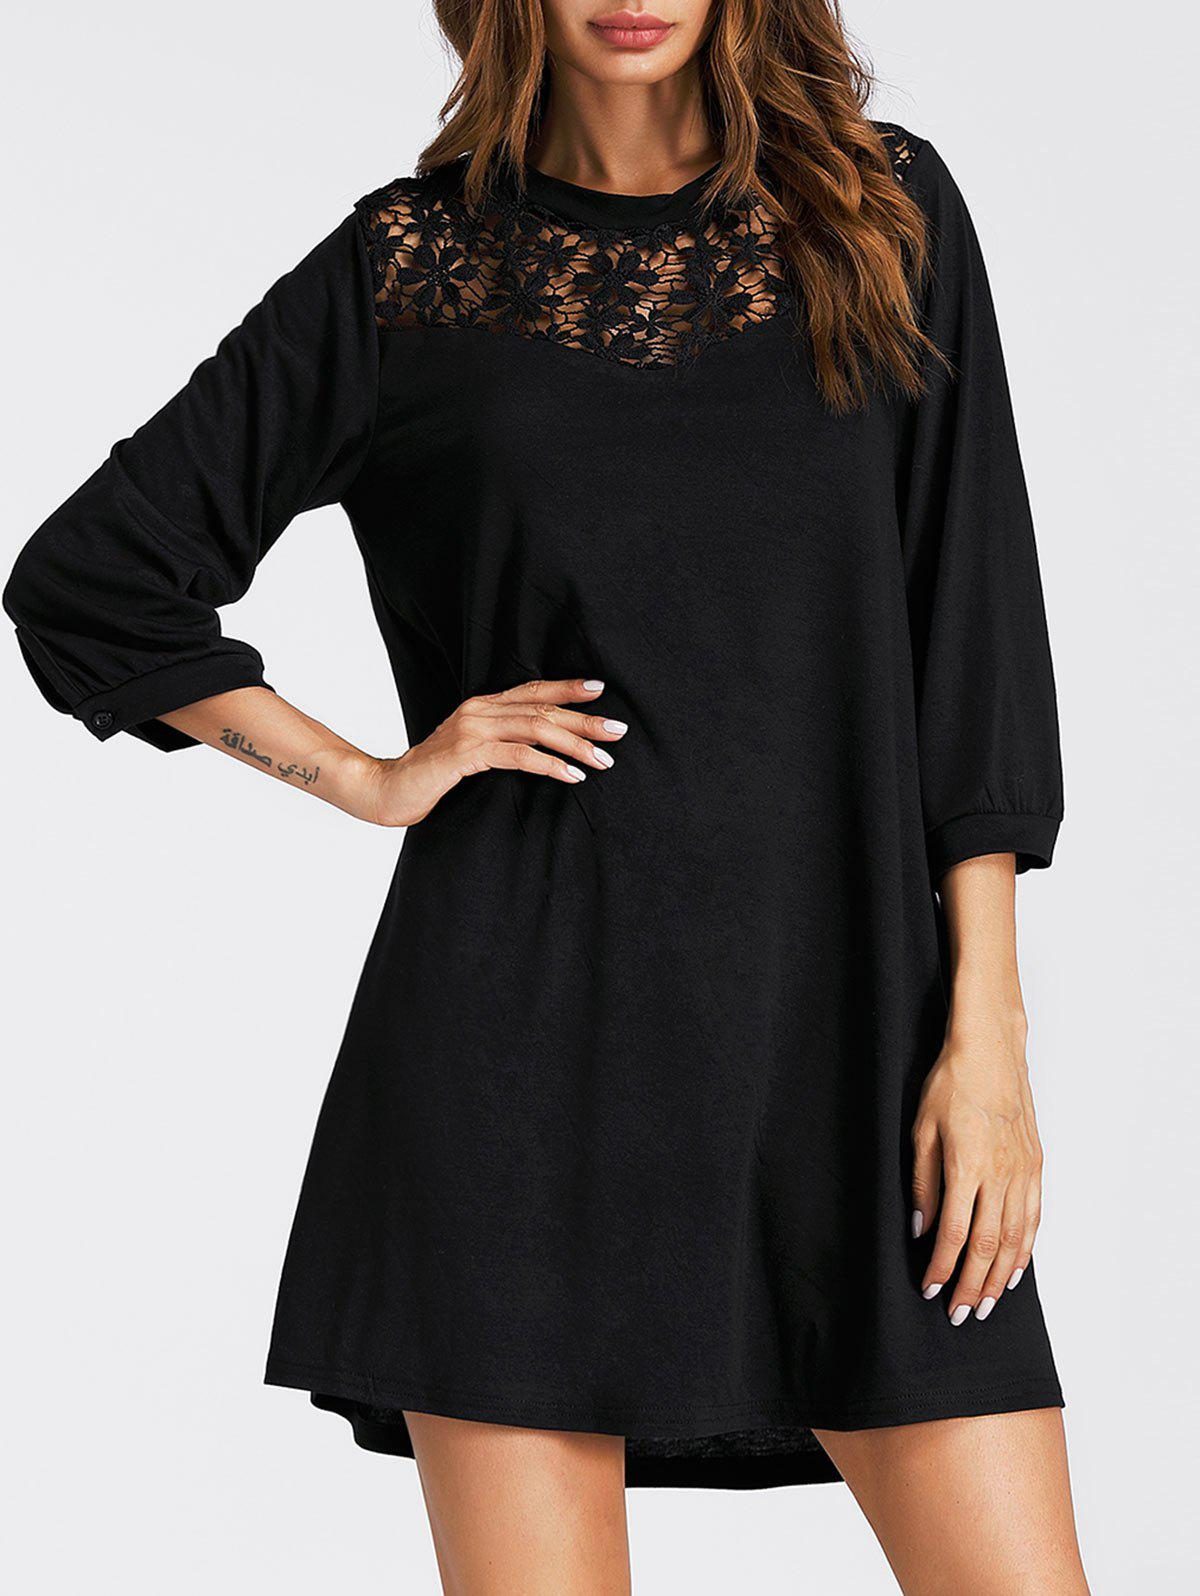 Lace Panel Mini Tunic Dress - BLACK S